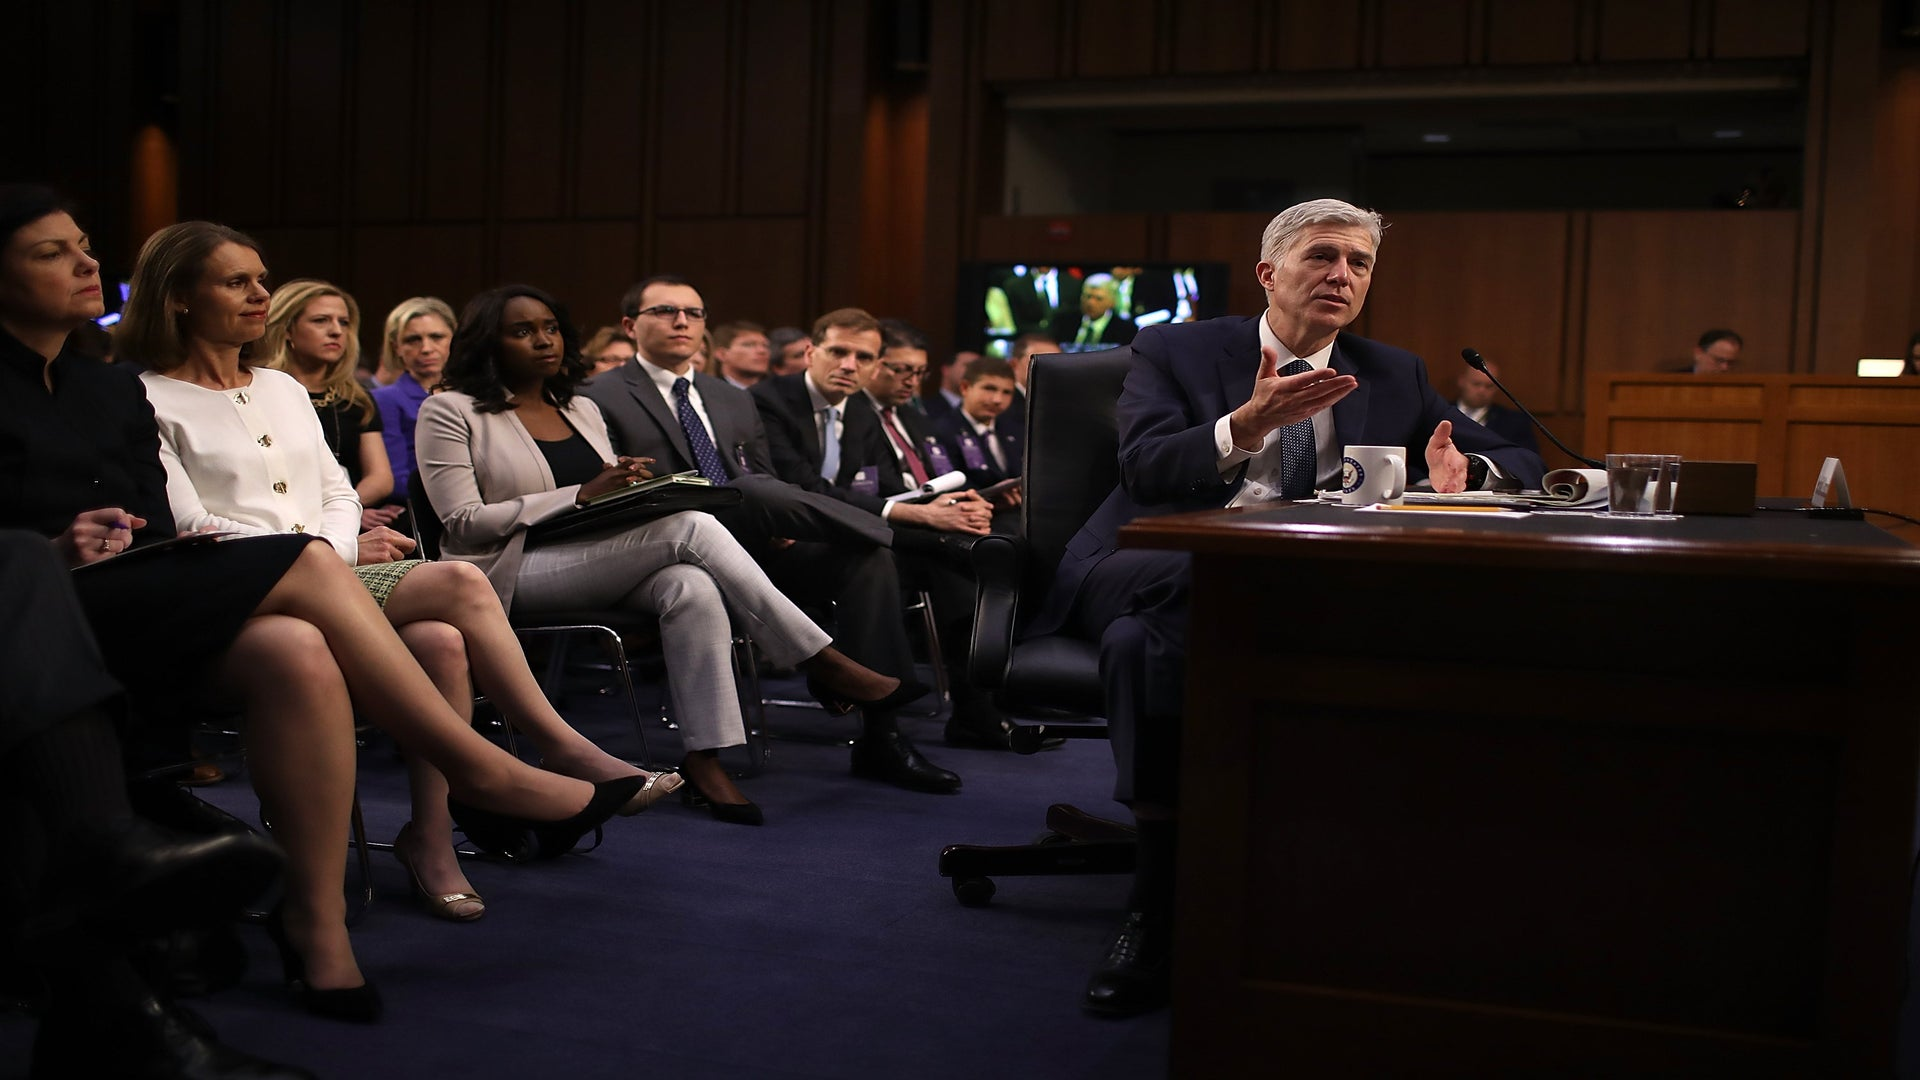 Republicans Might Use The 'Nuclear Option' ToConfirm Neil Gorsuch. What's That?